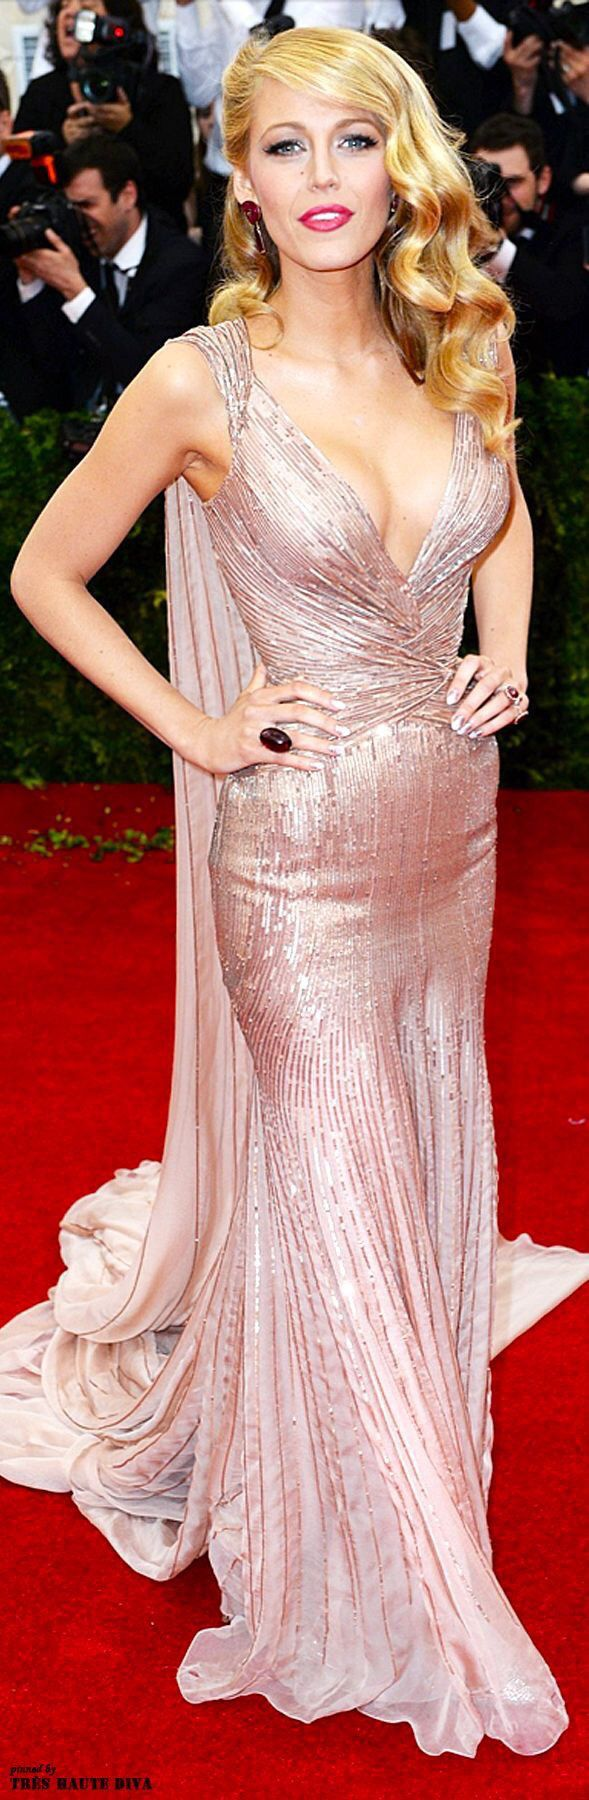 LOS VESTIDOS MÁS ICÓNICOS (PARTE I) | Blake lively, Red carpet and Gowns